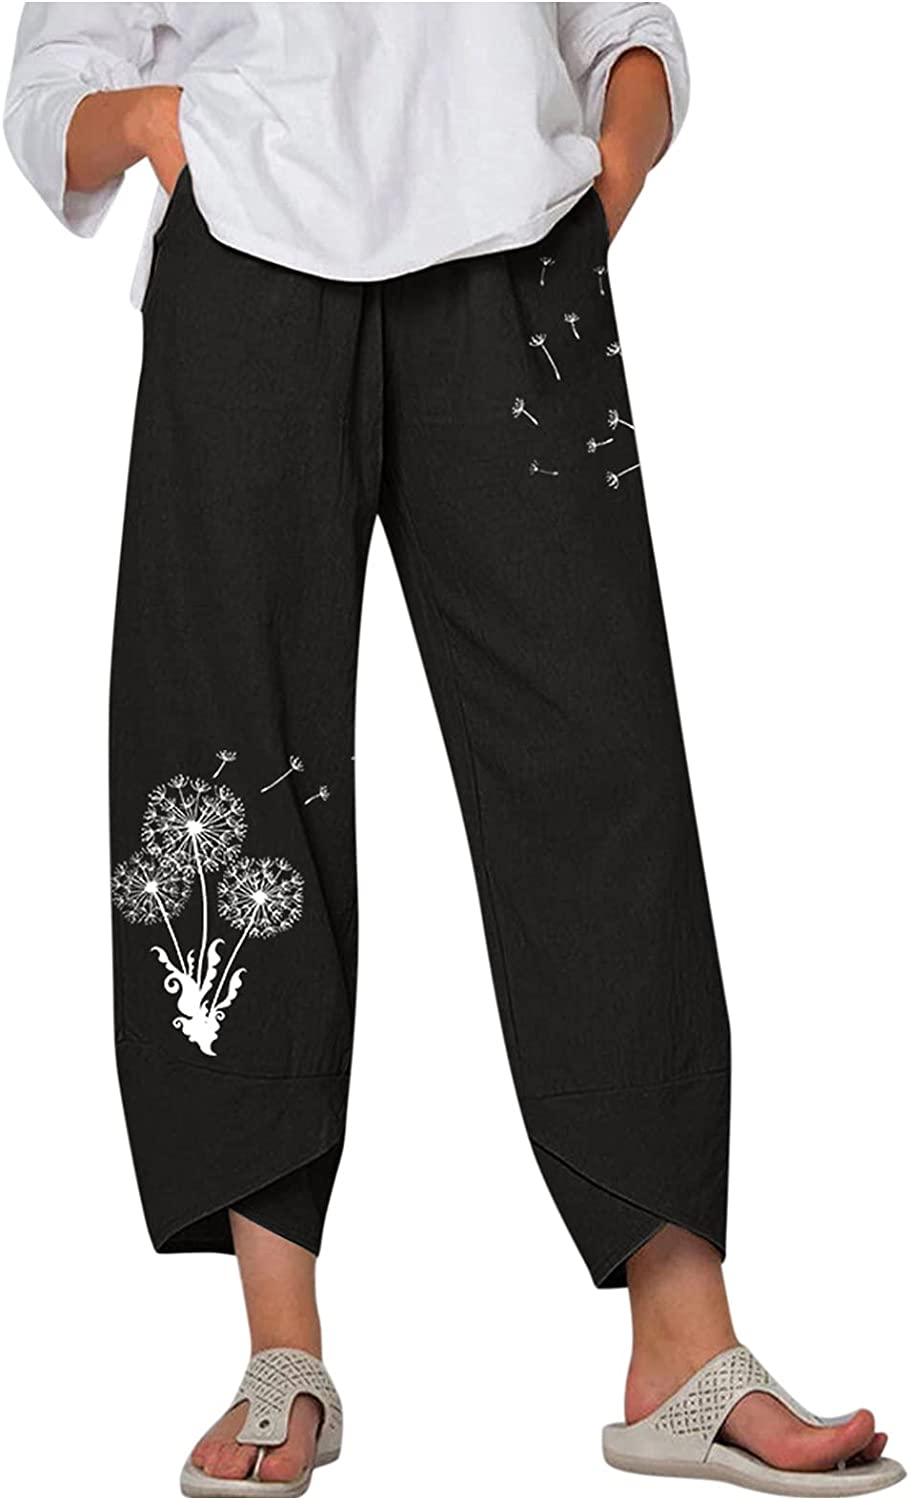 Uninevp Women Pants Casual Summer 2021 New Print Elastic Waist Pants Casual Baggy Jogger Workout Trousers with Pockets